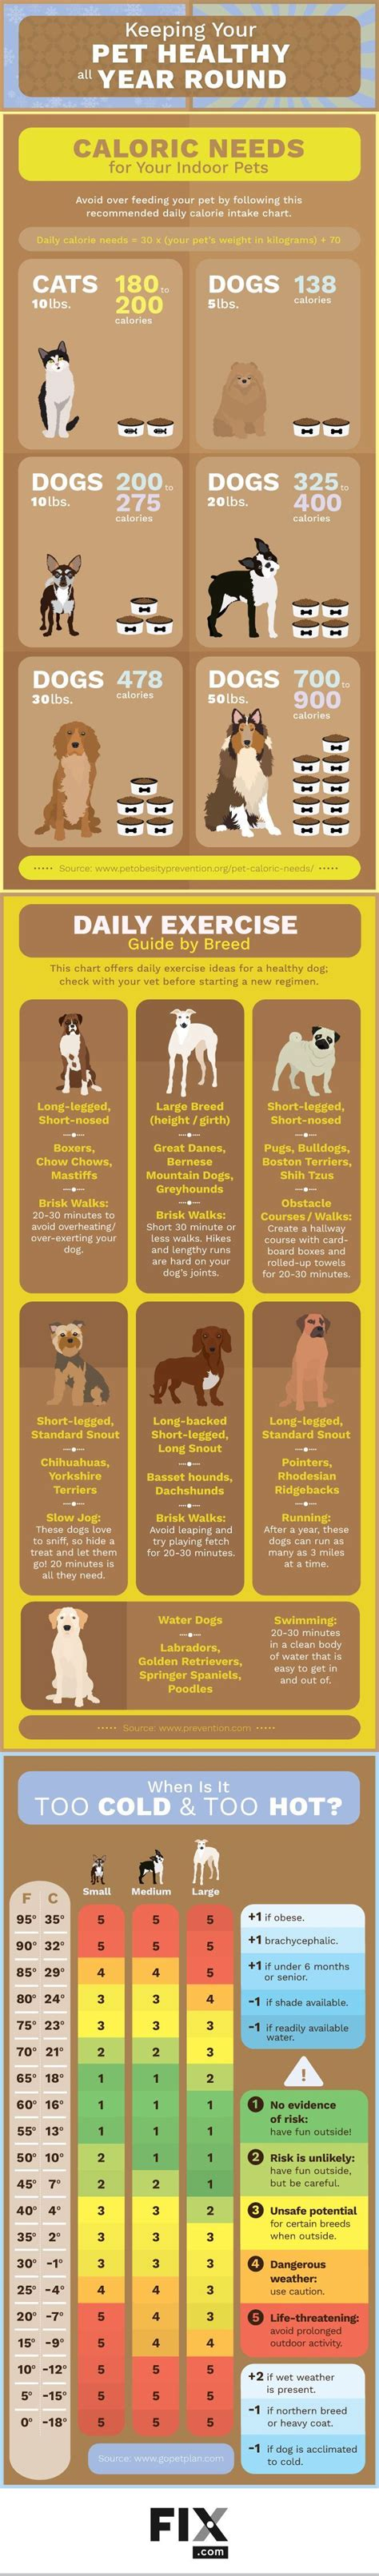 puppy daily schedule 1000 ideas about puppy schedule on puppy crate new puppy and australian